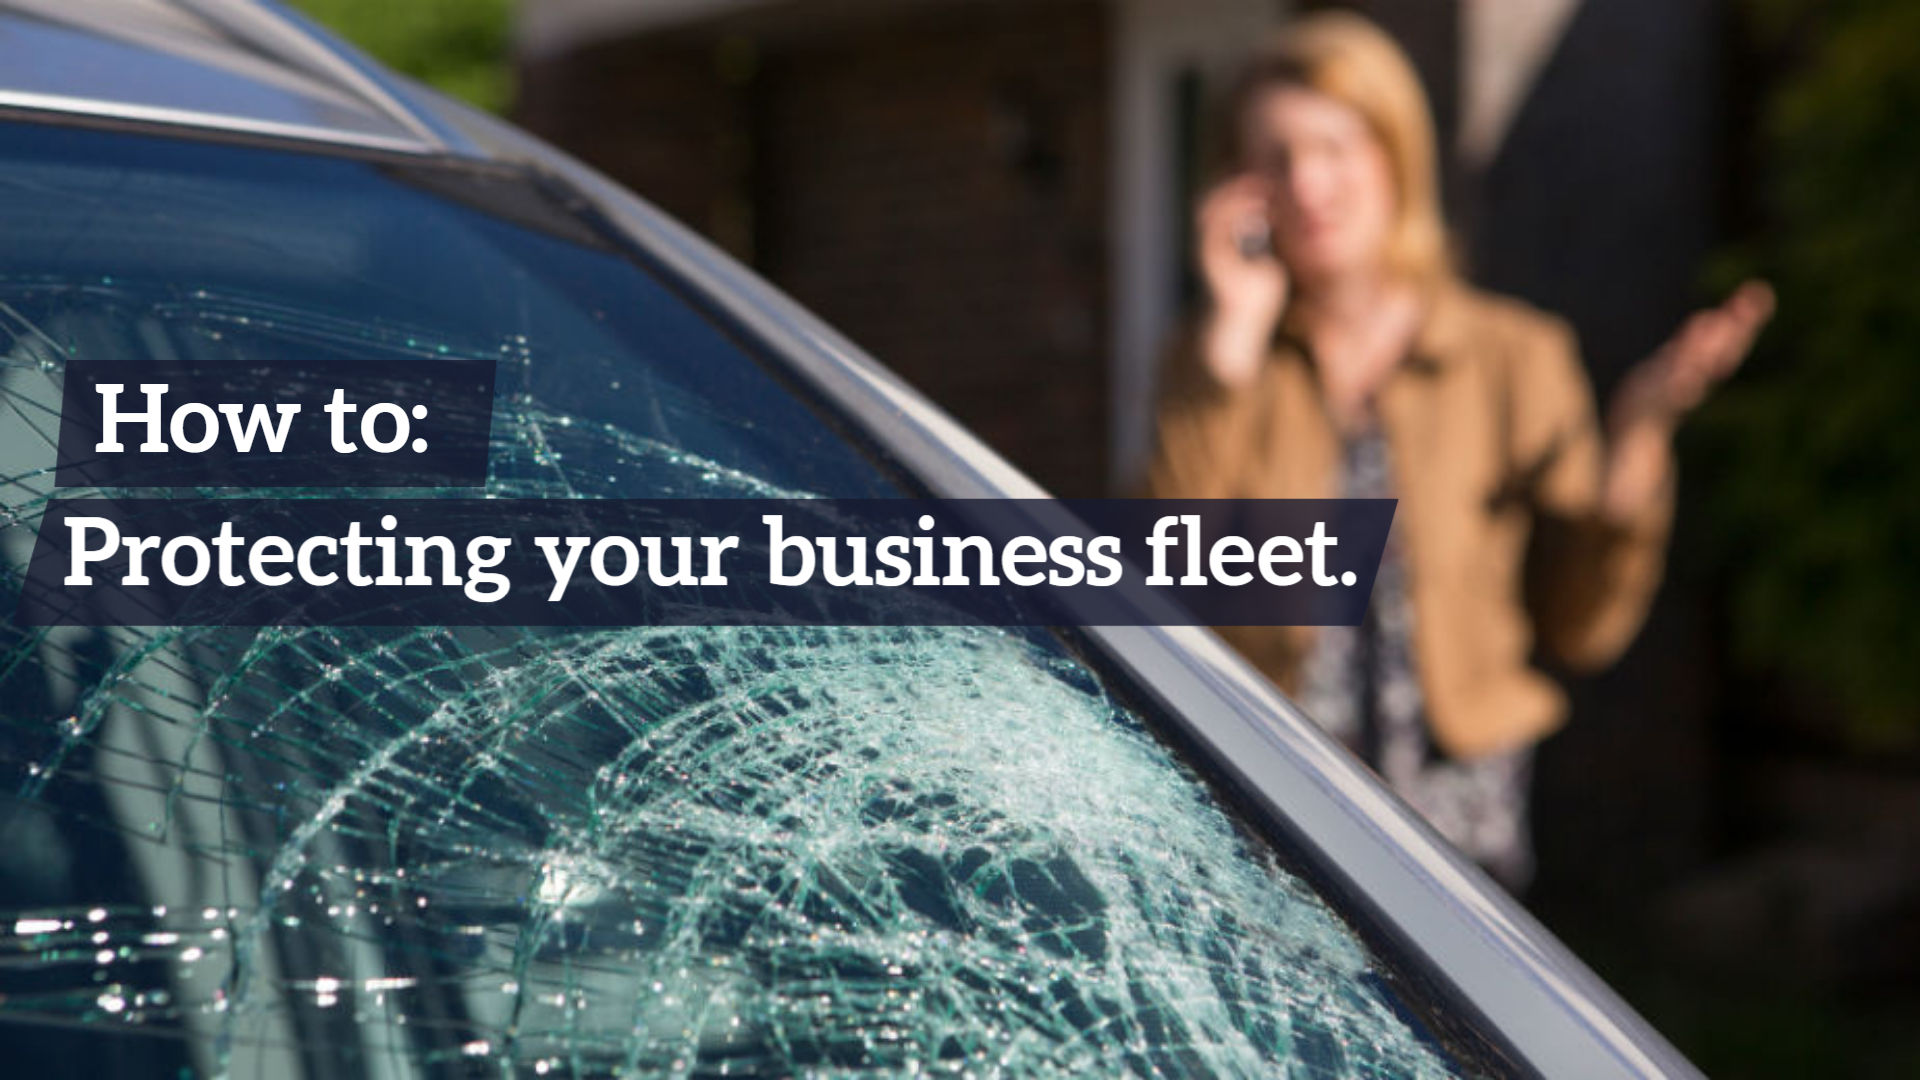 How to: Protect your business fleet